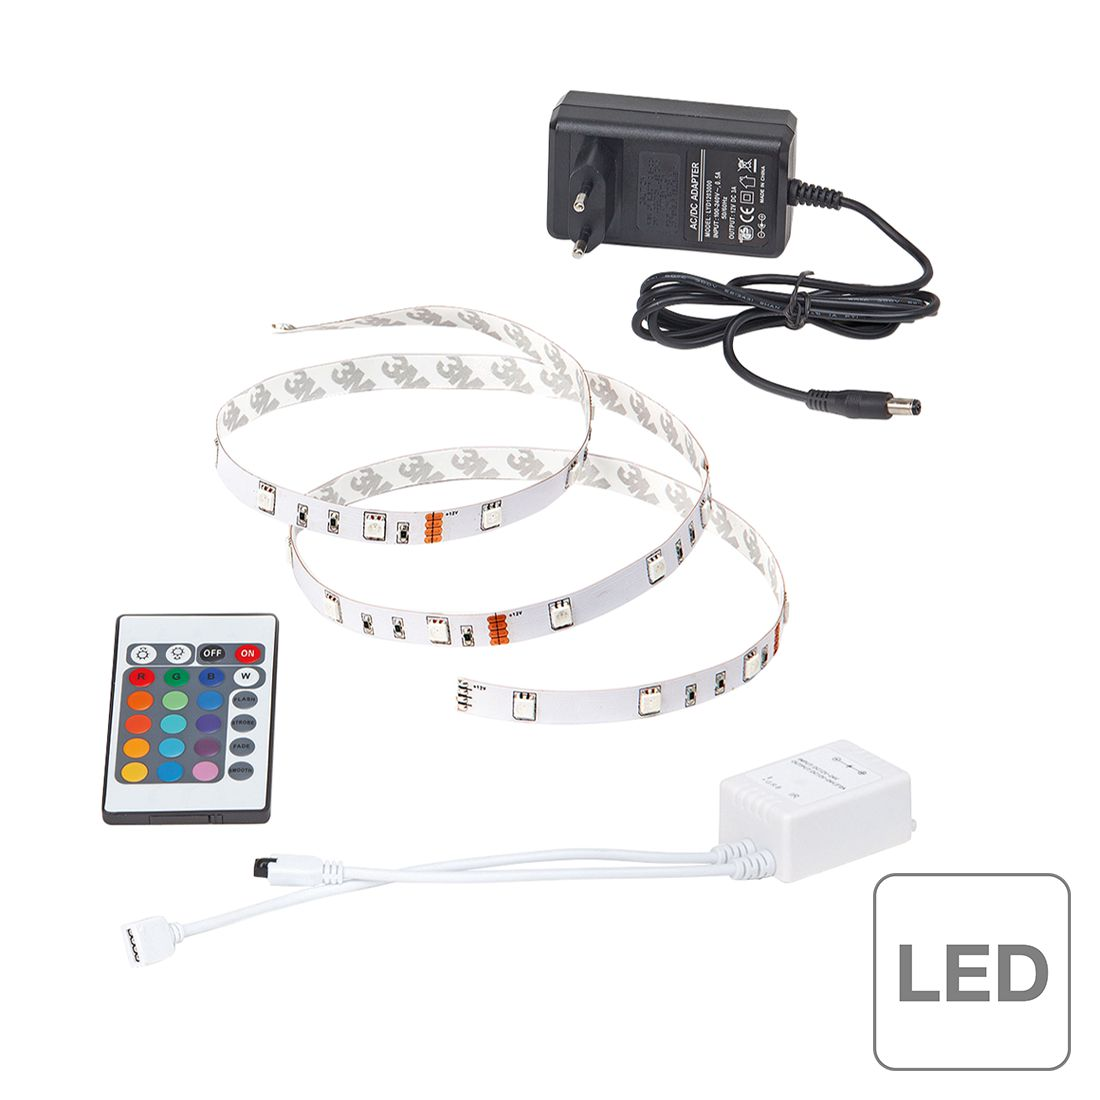 LED-Streifen Light Strip LED ● 1-flammig- Brilliant A+